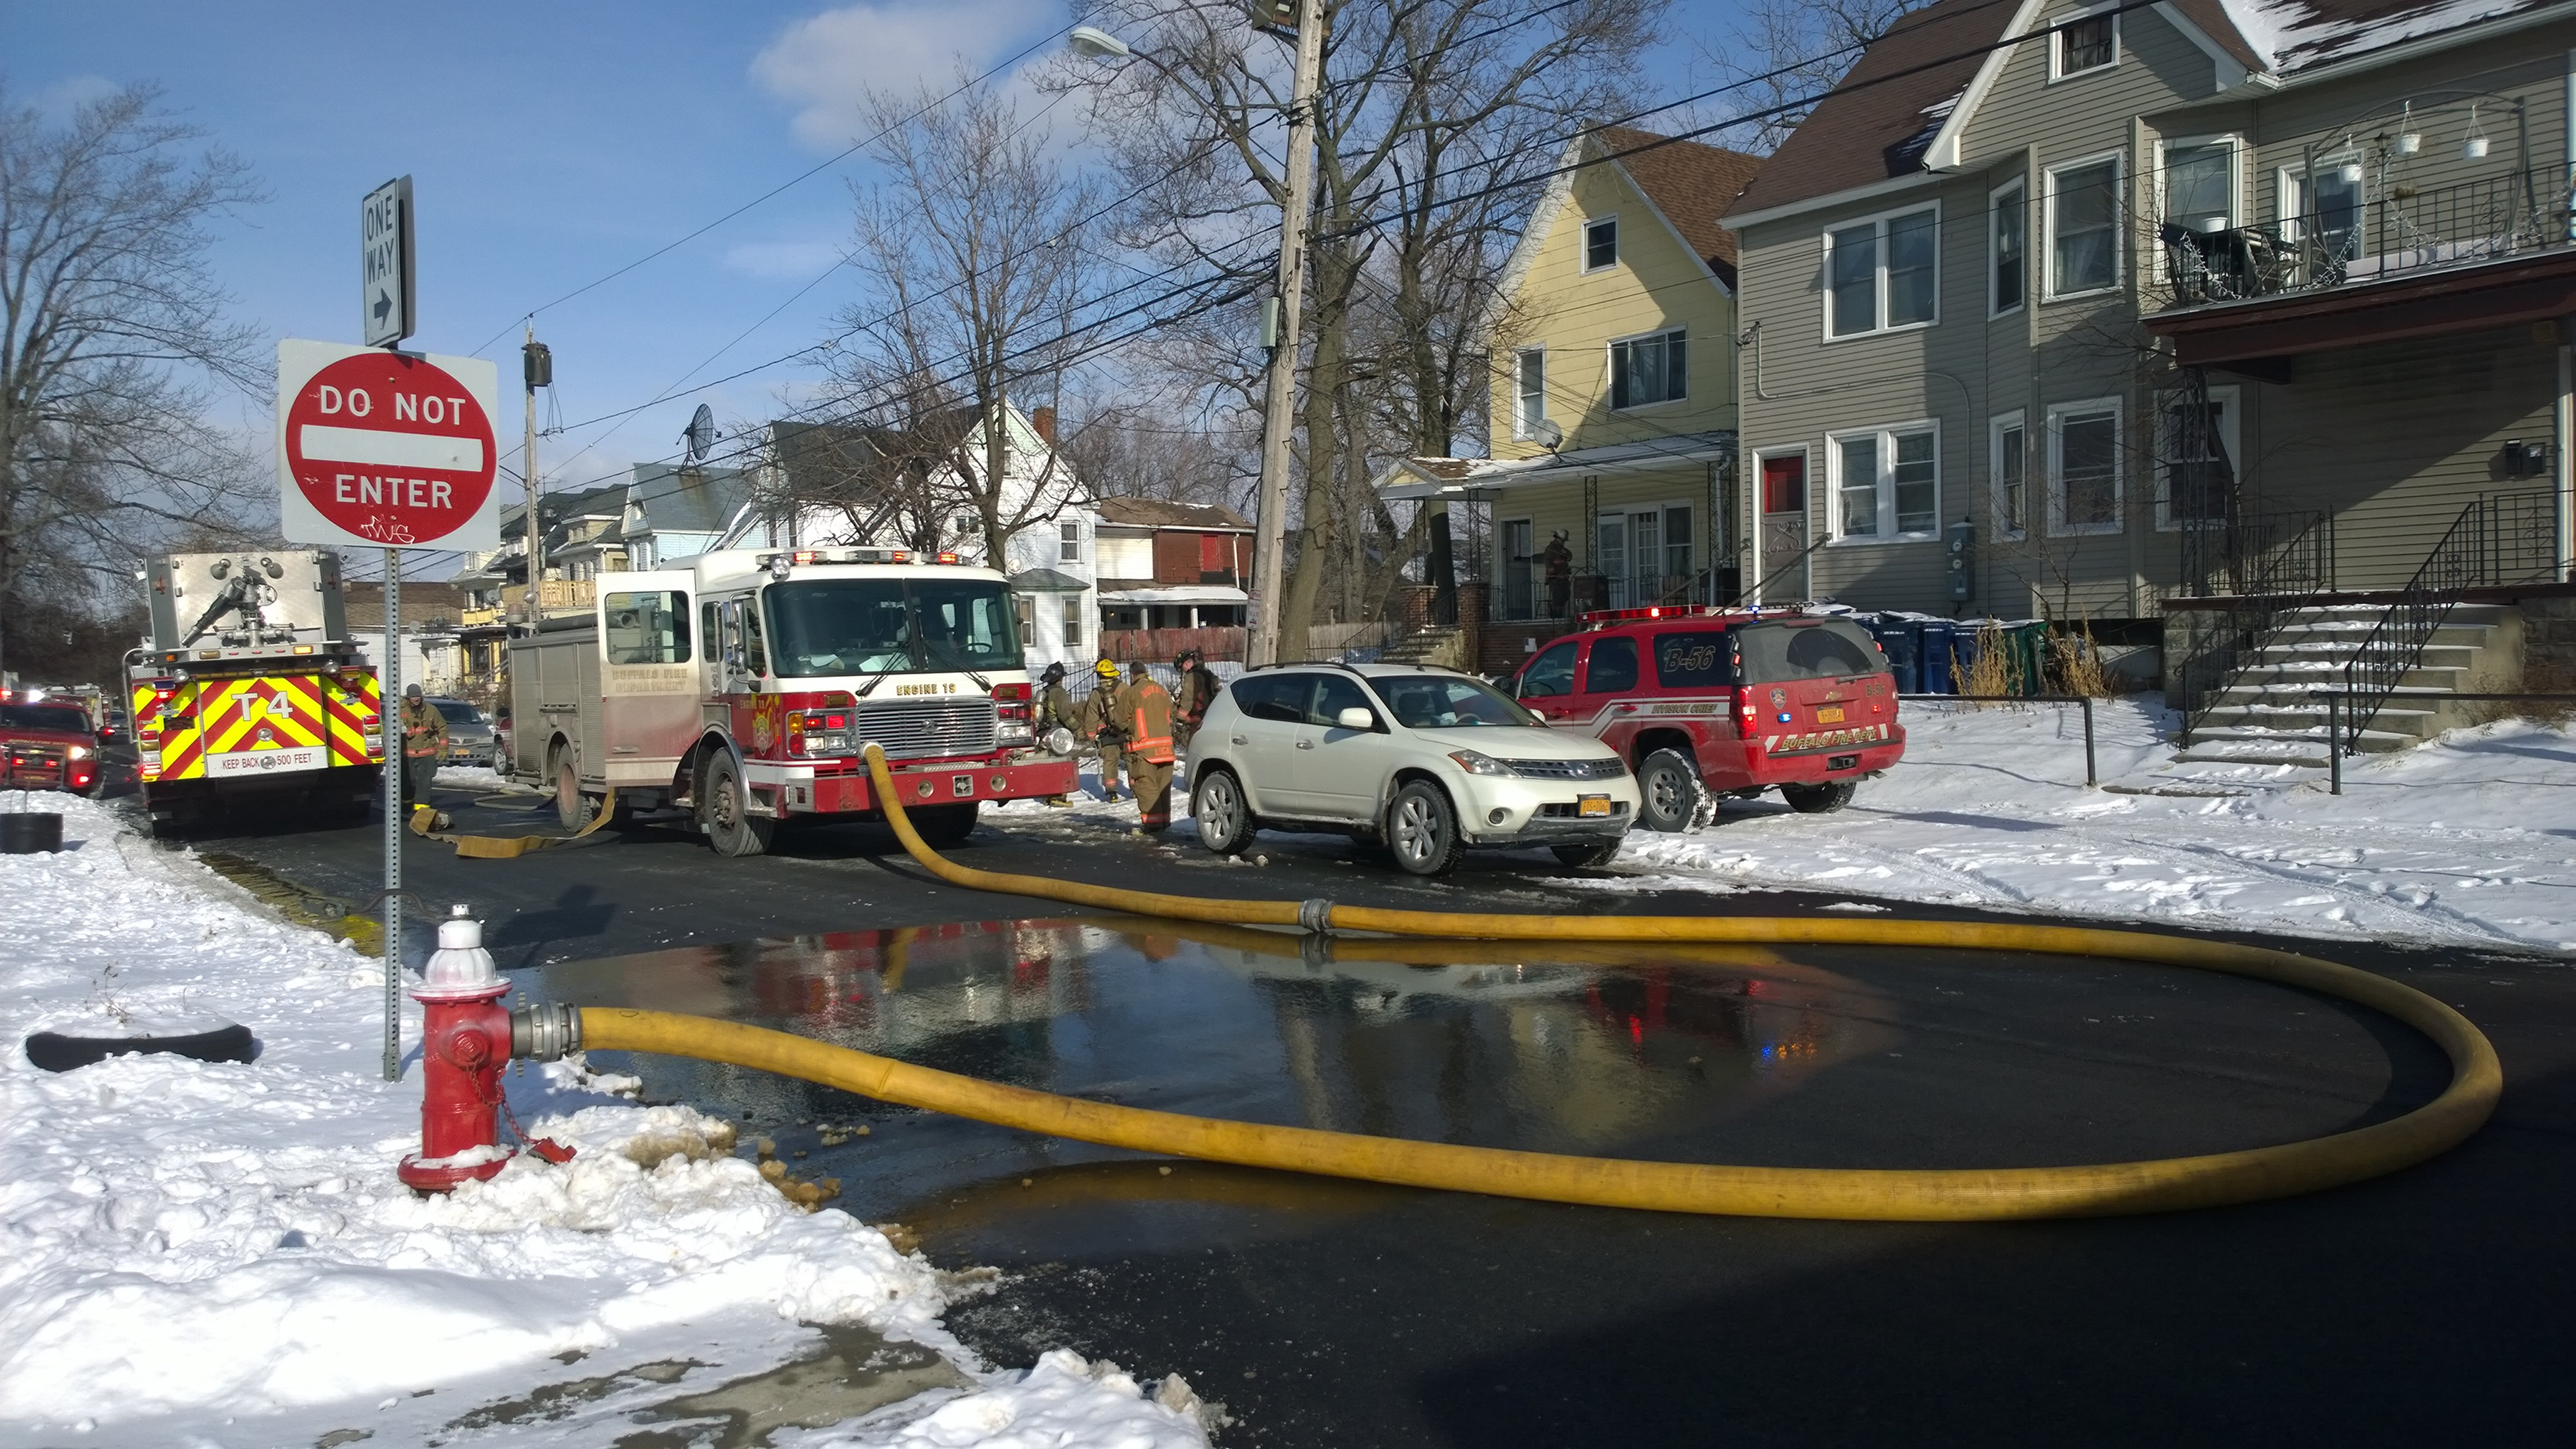 Buffalo firefighters were called out twice Wednesday to battle a blaze at 1177 West Ave. by an occupant trying to thaw frozen pipes.